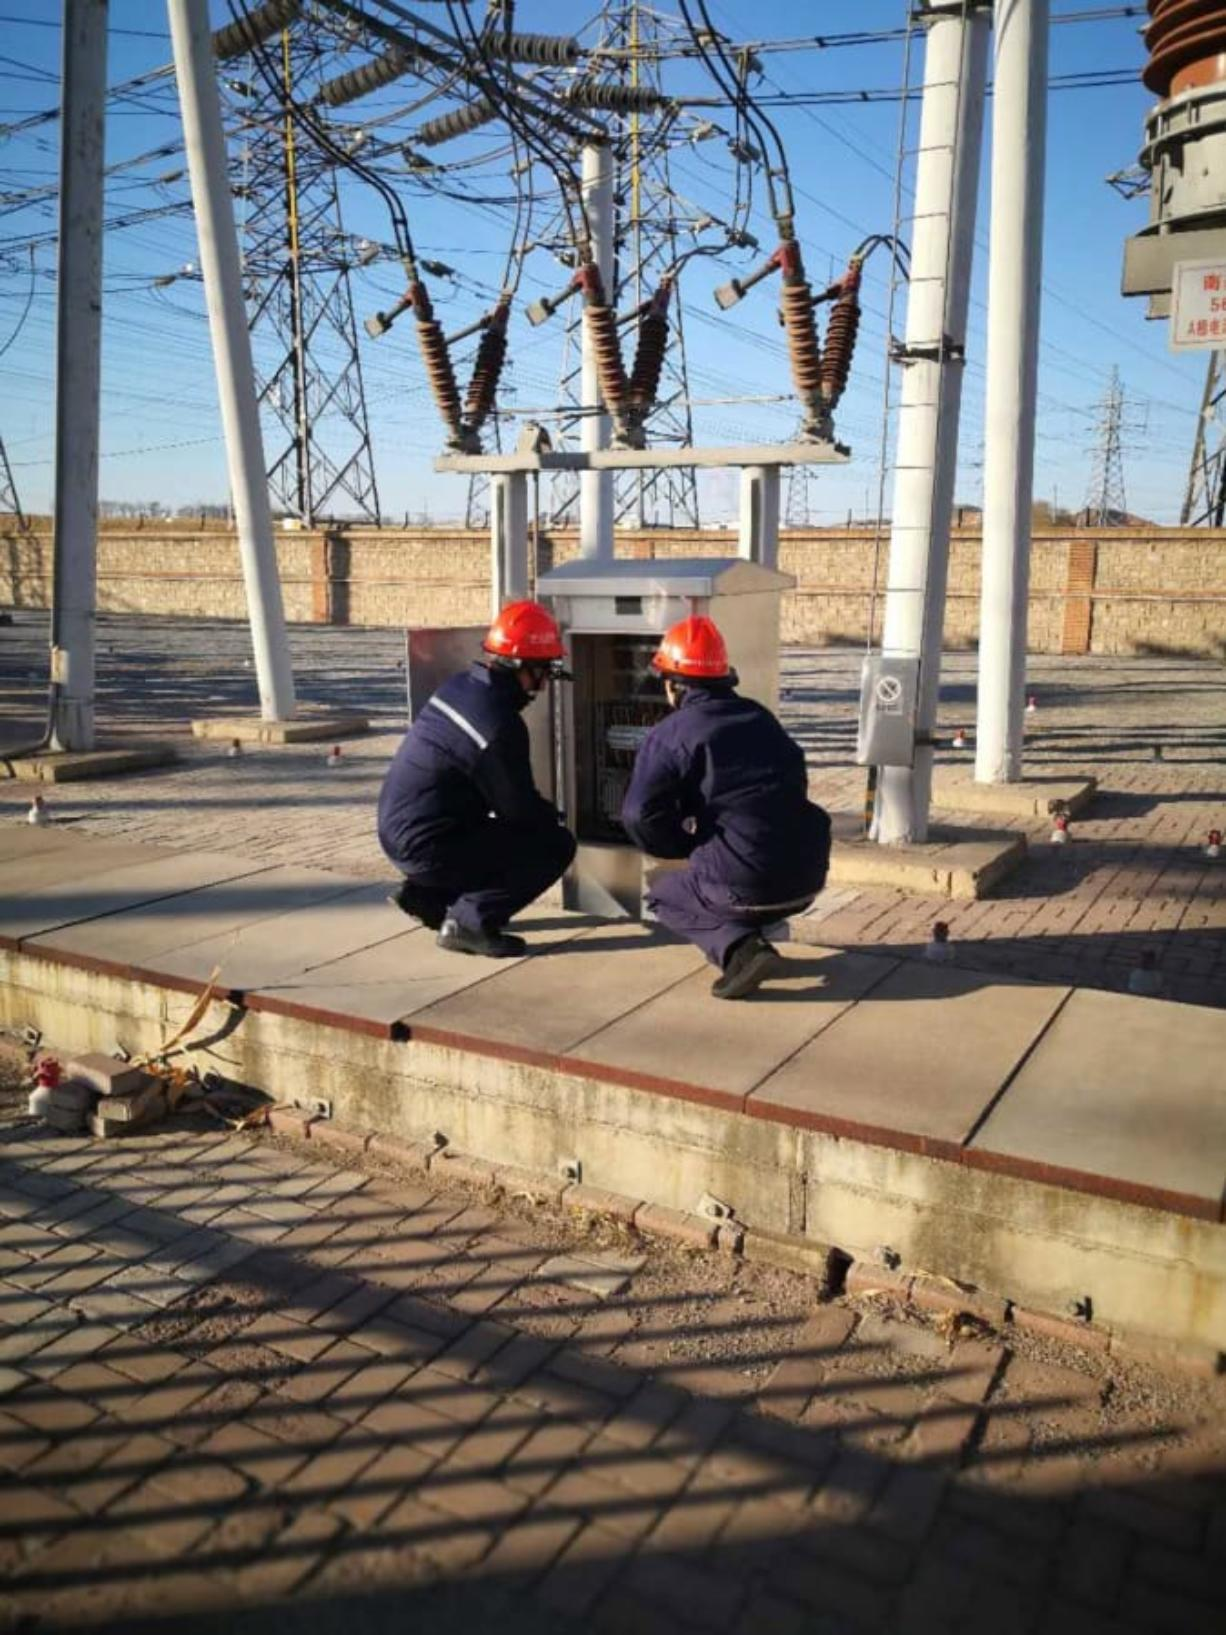 Workers for State Grid, China's state utility company, work in the field using RealWear's augmented-reality headset. The company said its business in China has been disrupted by the coronavirus outbreak, but it's been able to adjust to most of the impacts so far. (Courtesy of RealWear)